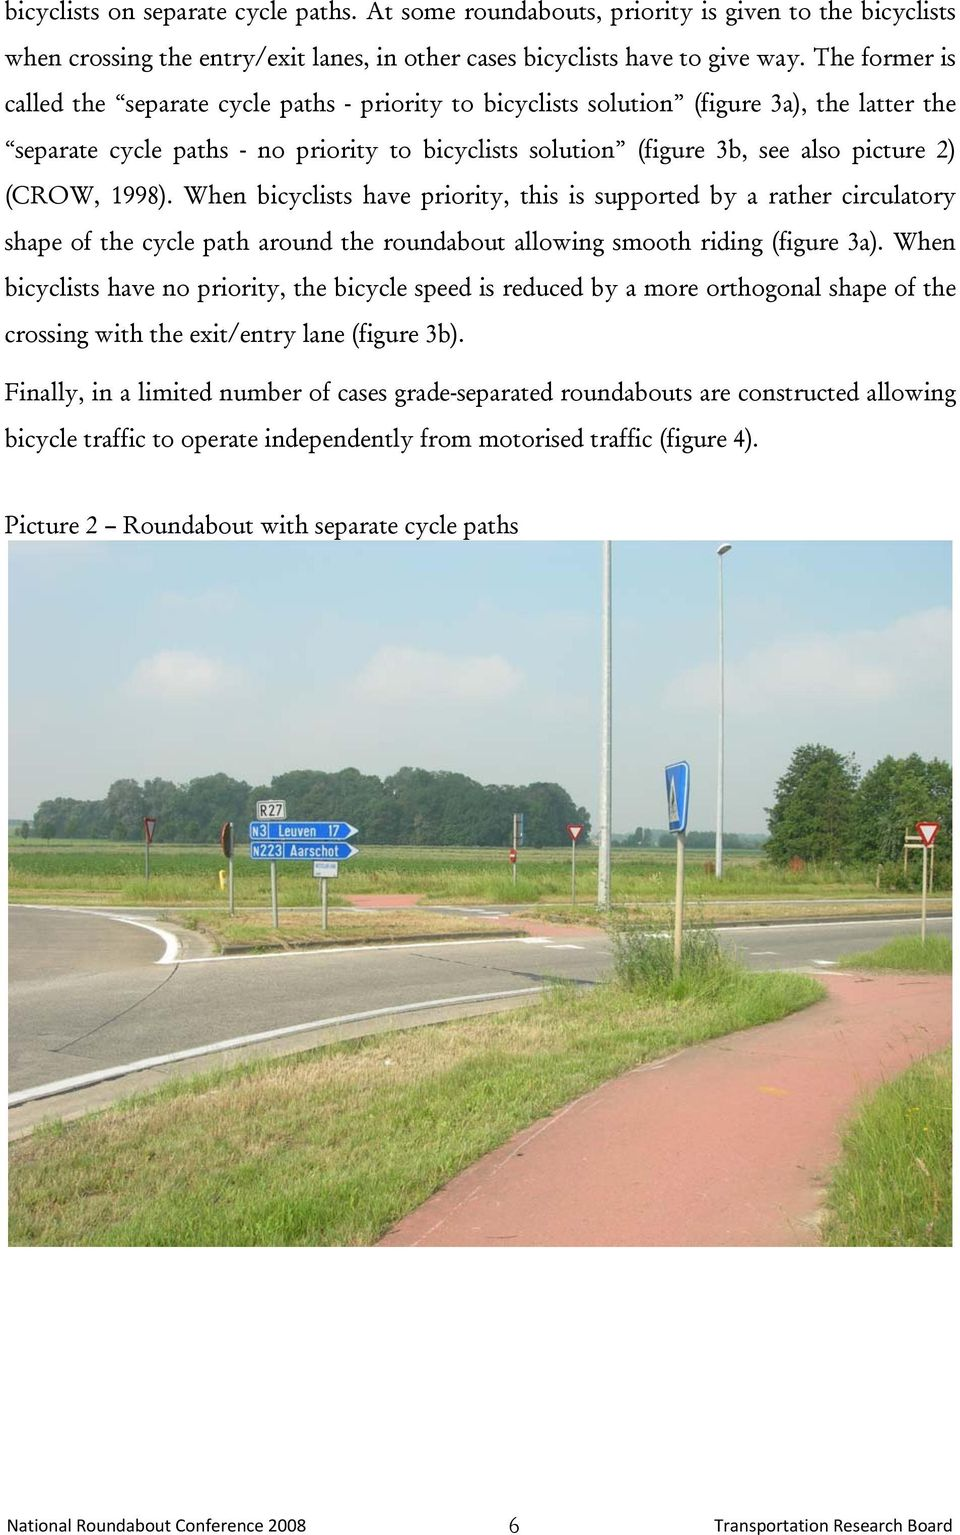 (CROW, 1998). When bicyclists have priority, this is supported by a rather circulatory shape of the cycle path around the roundabout allowing smooth riding (figure 3a).